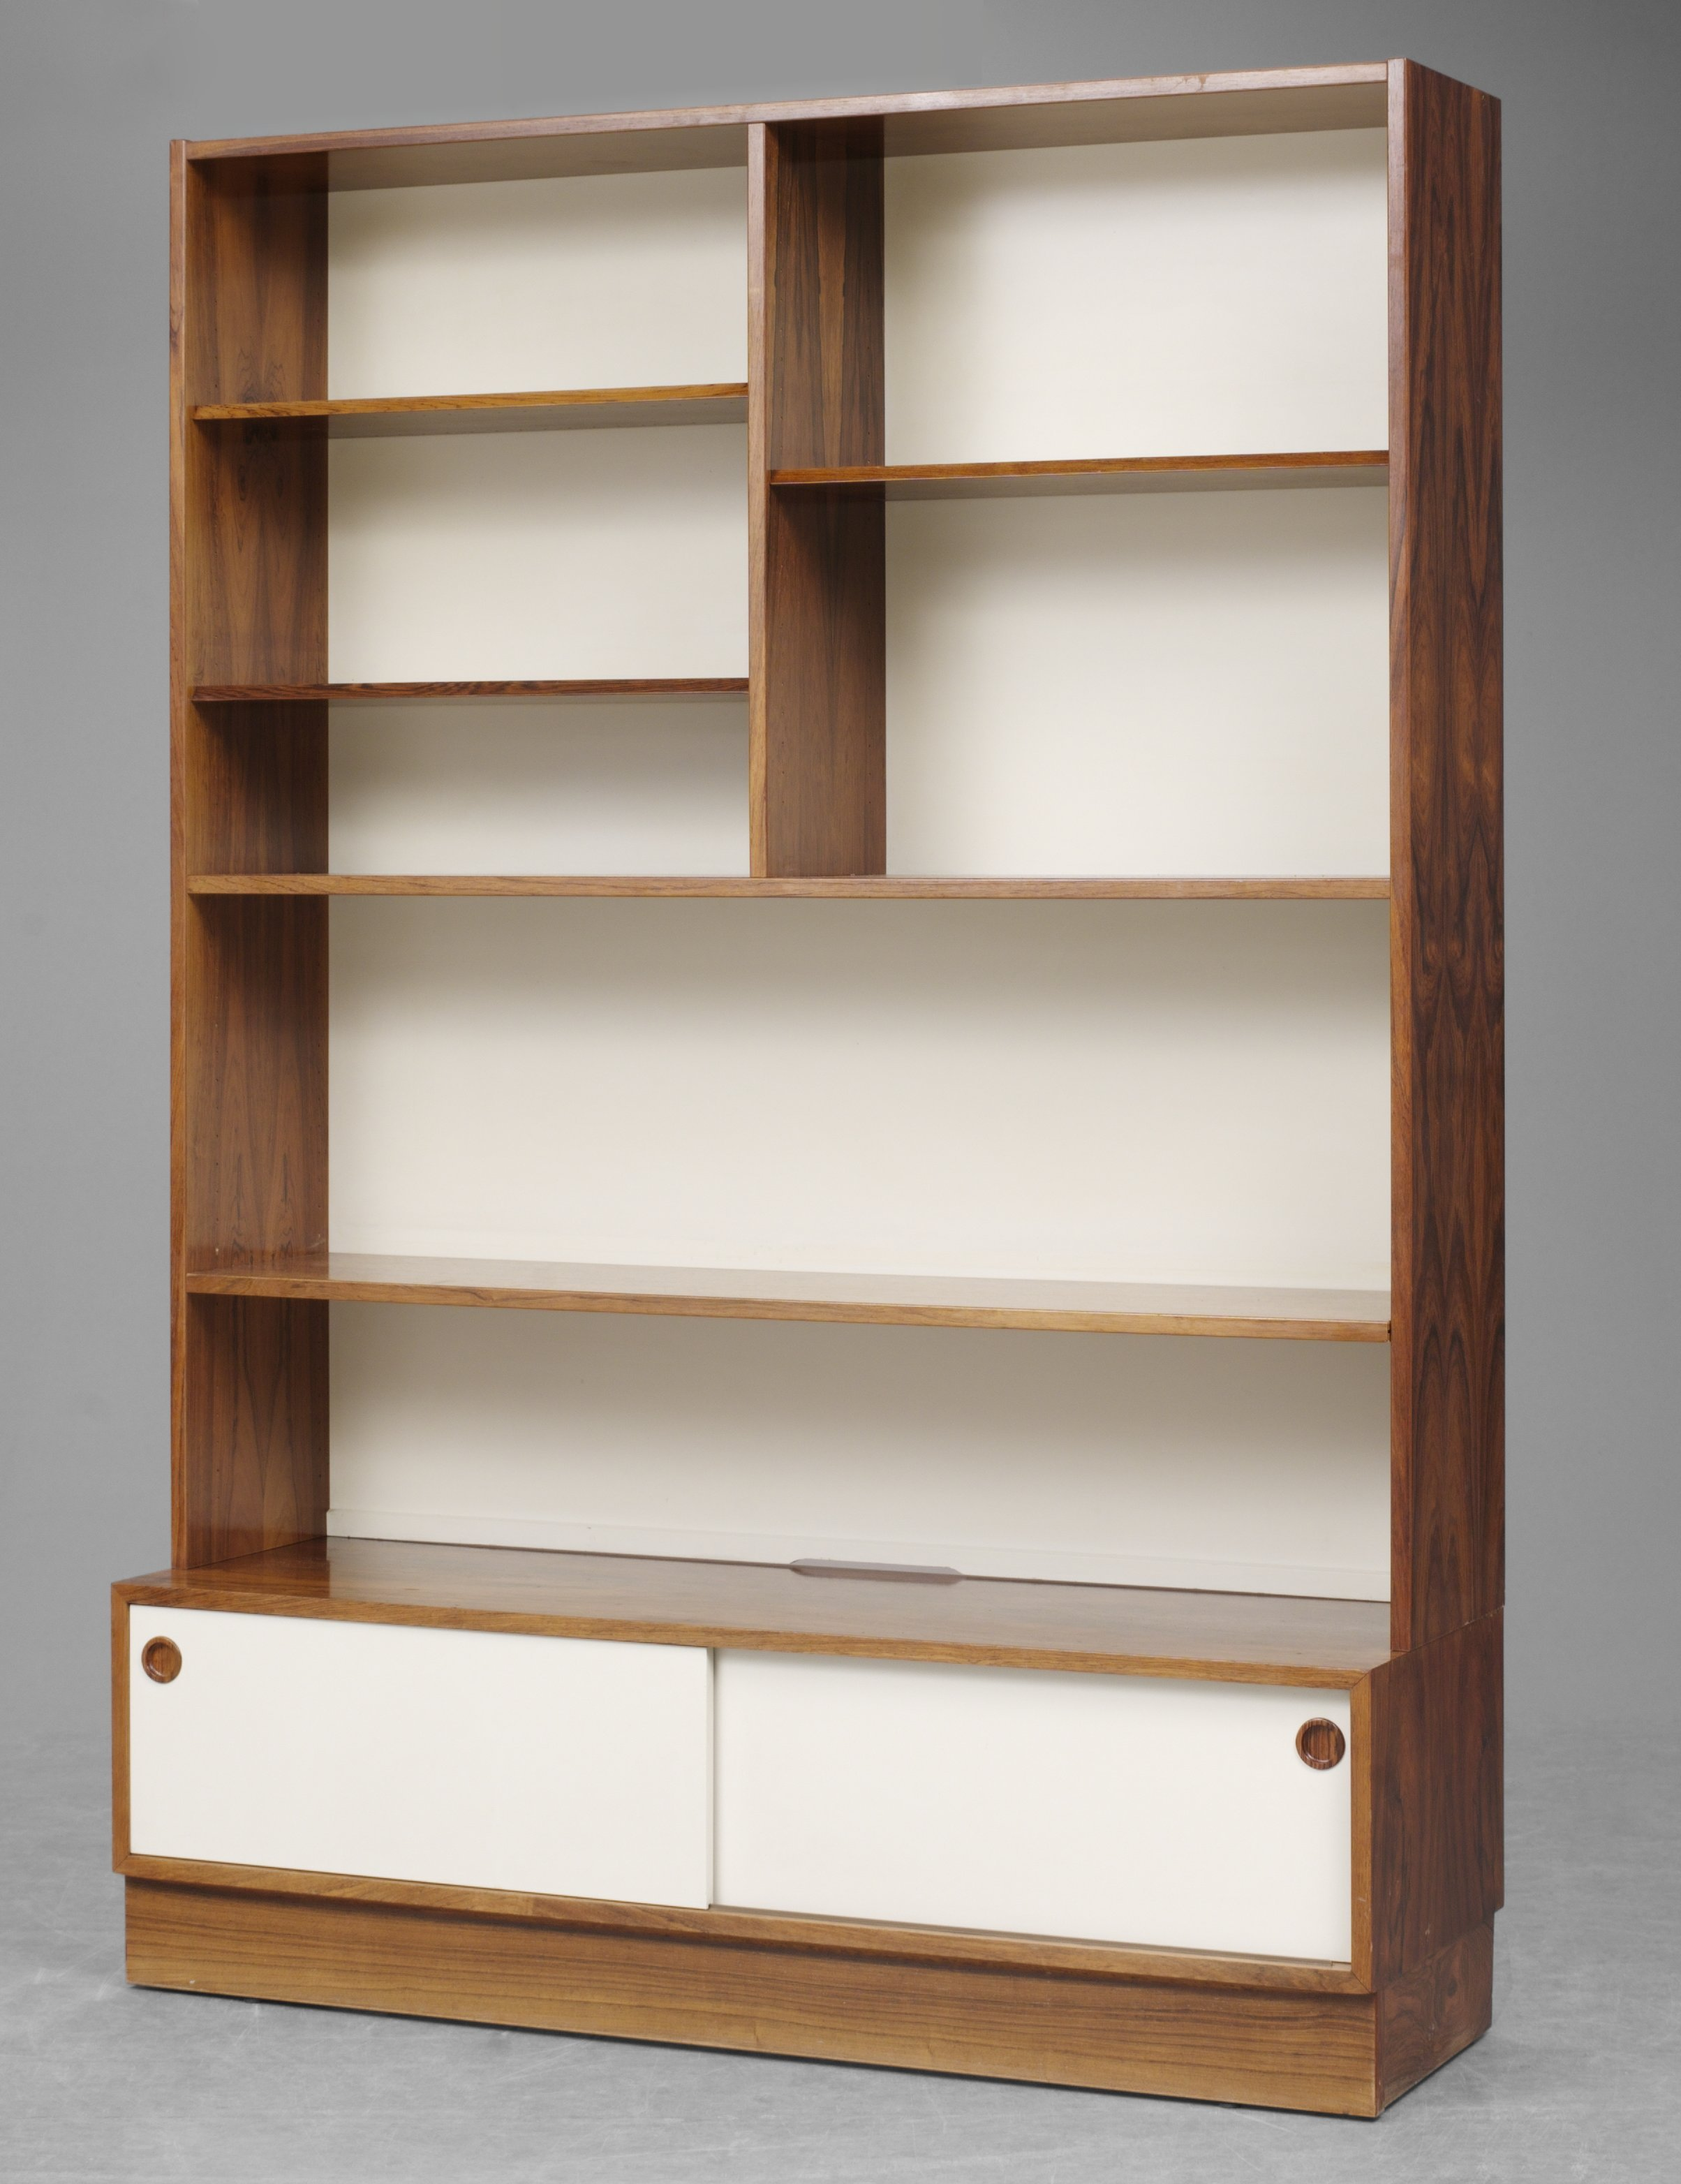 A Finn Juhl palisander and grey painted bookcase cabinet by Bovirke 1960's.